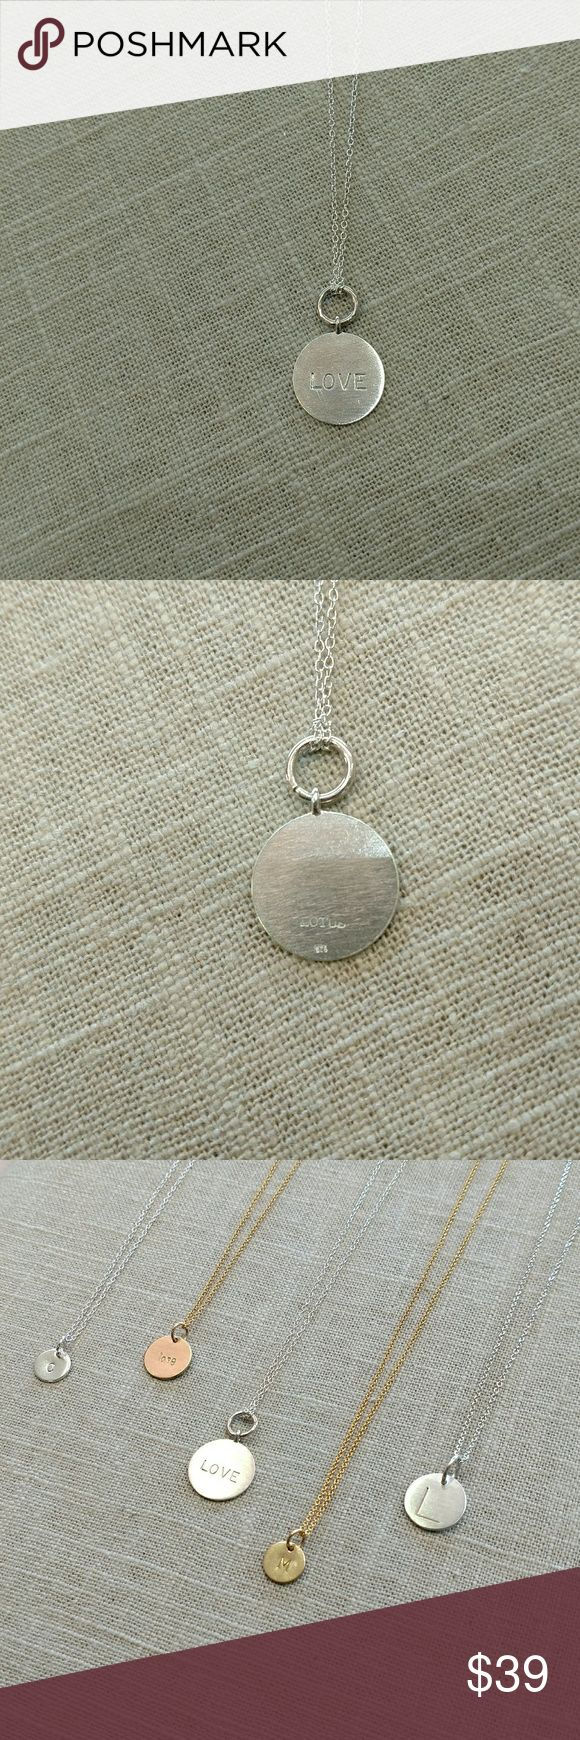 """Sterling silver LOVE disc pendant Sterling silver LOVE disc pendant with 18"""" chain. Brushed finish. Disc is approximately 16mm in diameter. By Lotus Jewelry Studio. Lotus Jewelry Necklaces"""